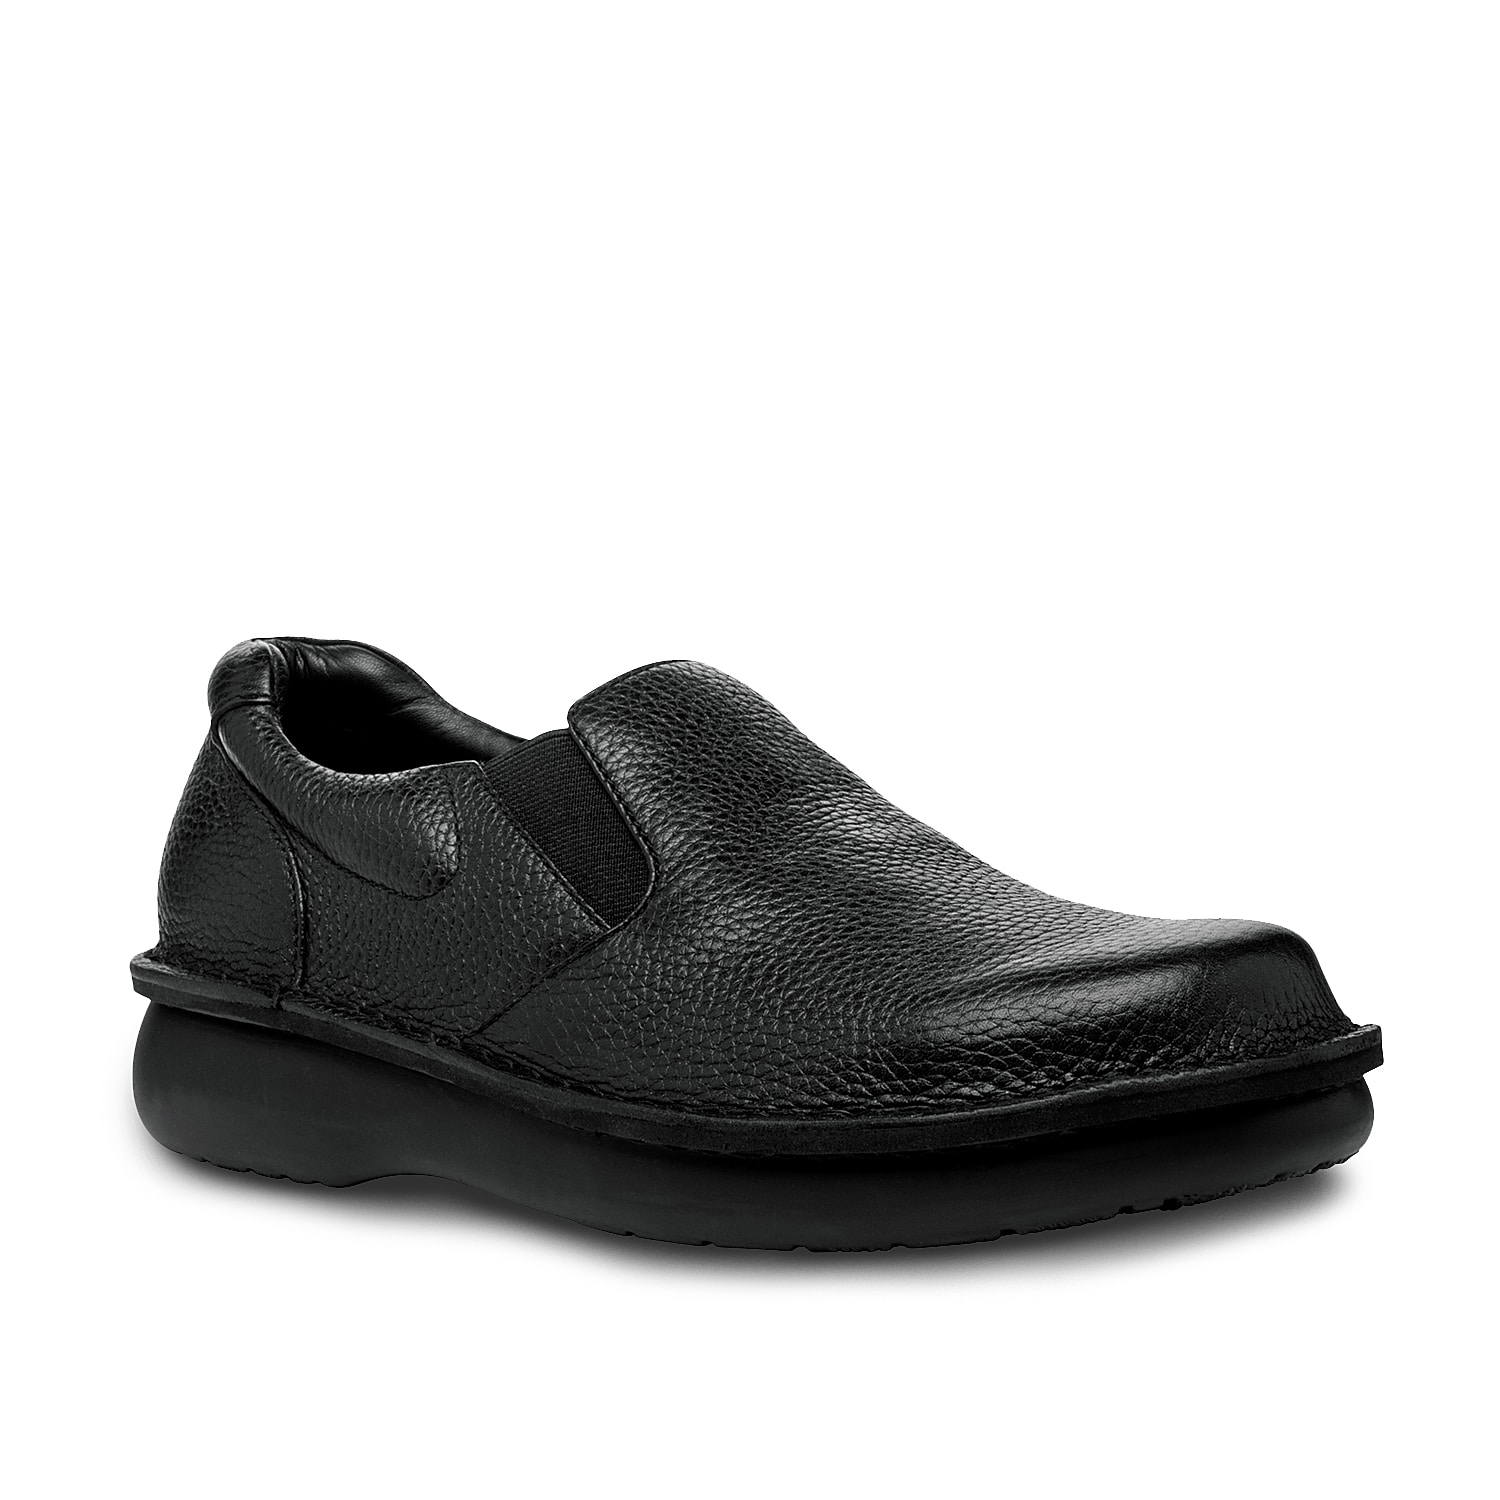 Built with a stitch to sole construction, the Galway slip-on from Propet features an extra-volume for roomy comfort. This handsome, waterproof style works with dressier slacks or a pair of jeans.